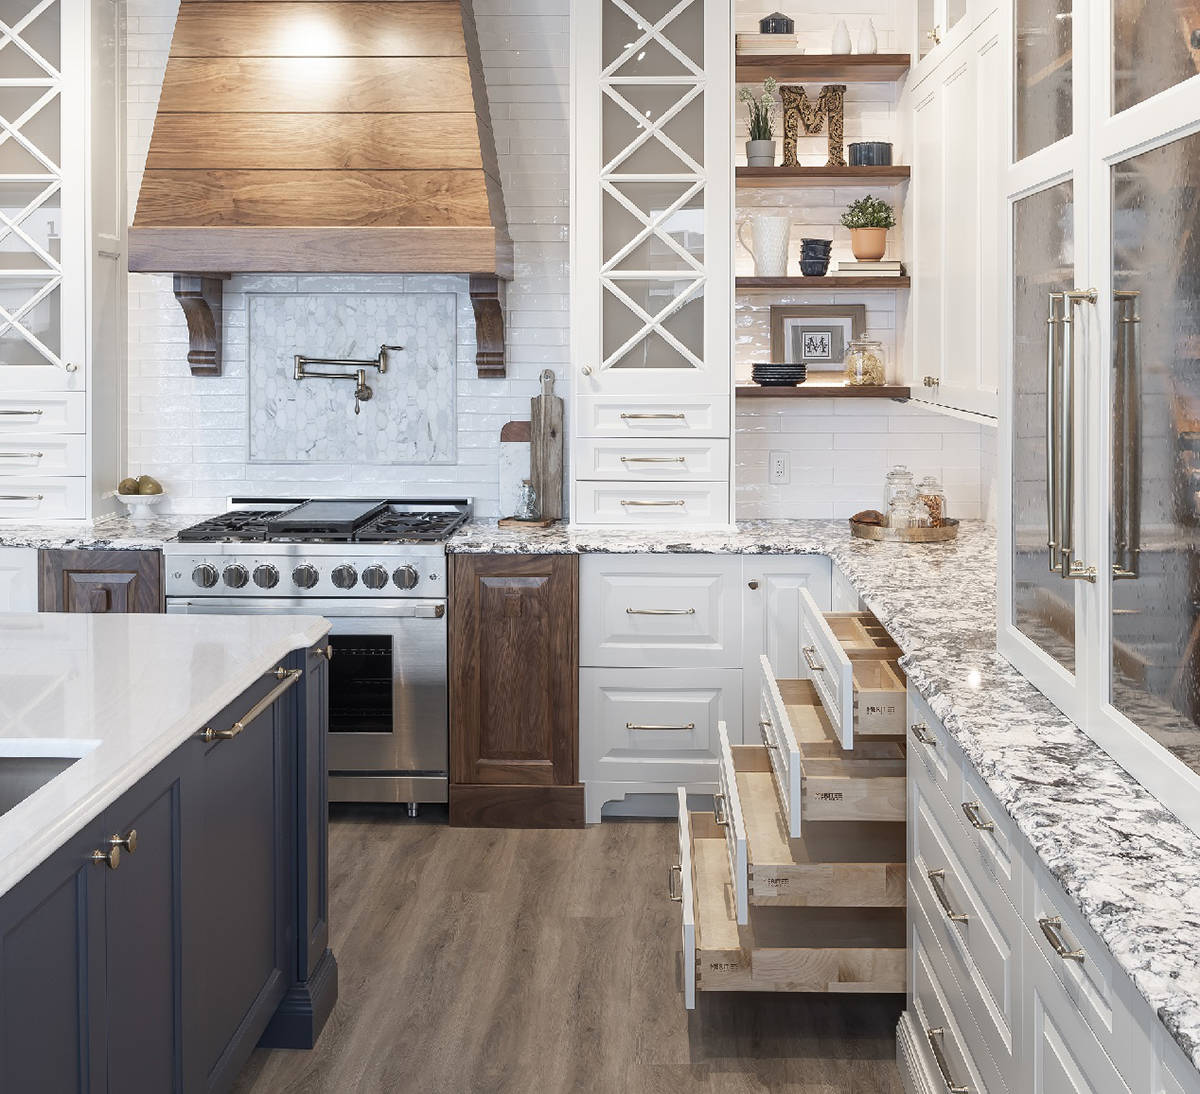 Merit Kitchens' new Langley Design Centre offers homeowners a large, modern facility filled with a variety of kitchen styles and layouts.